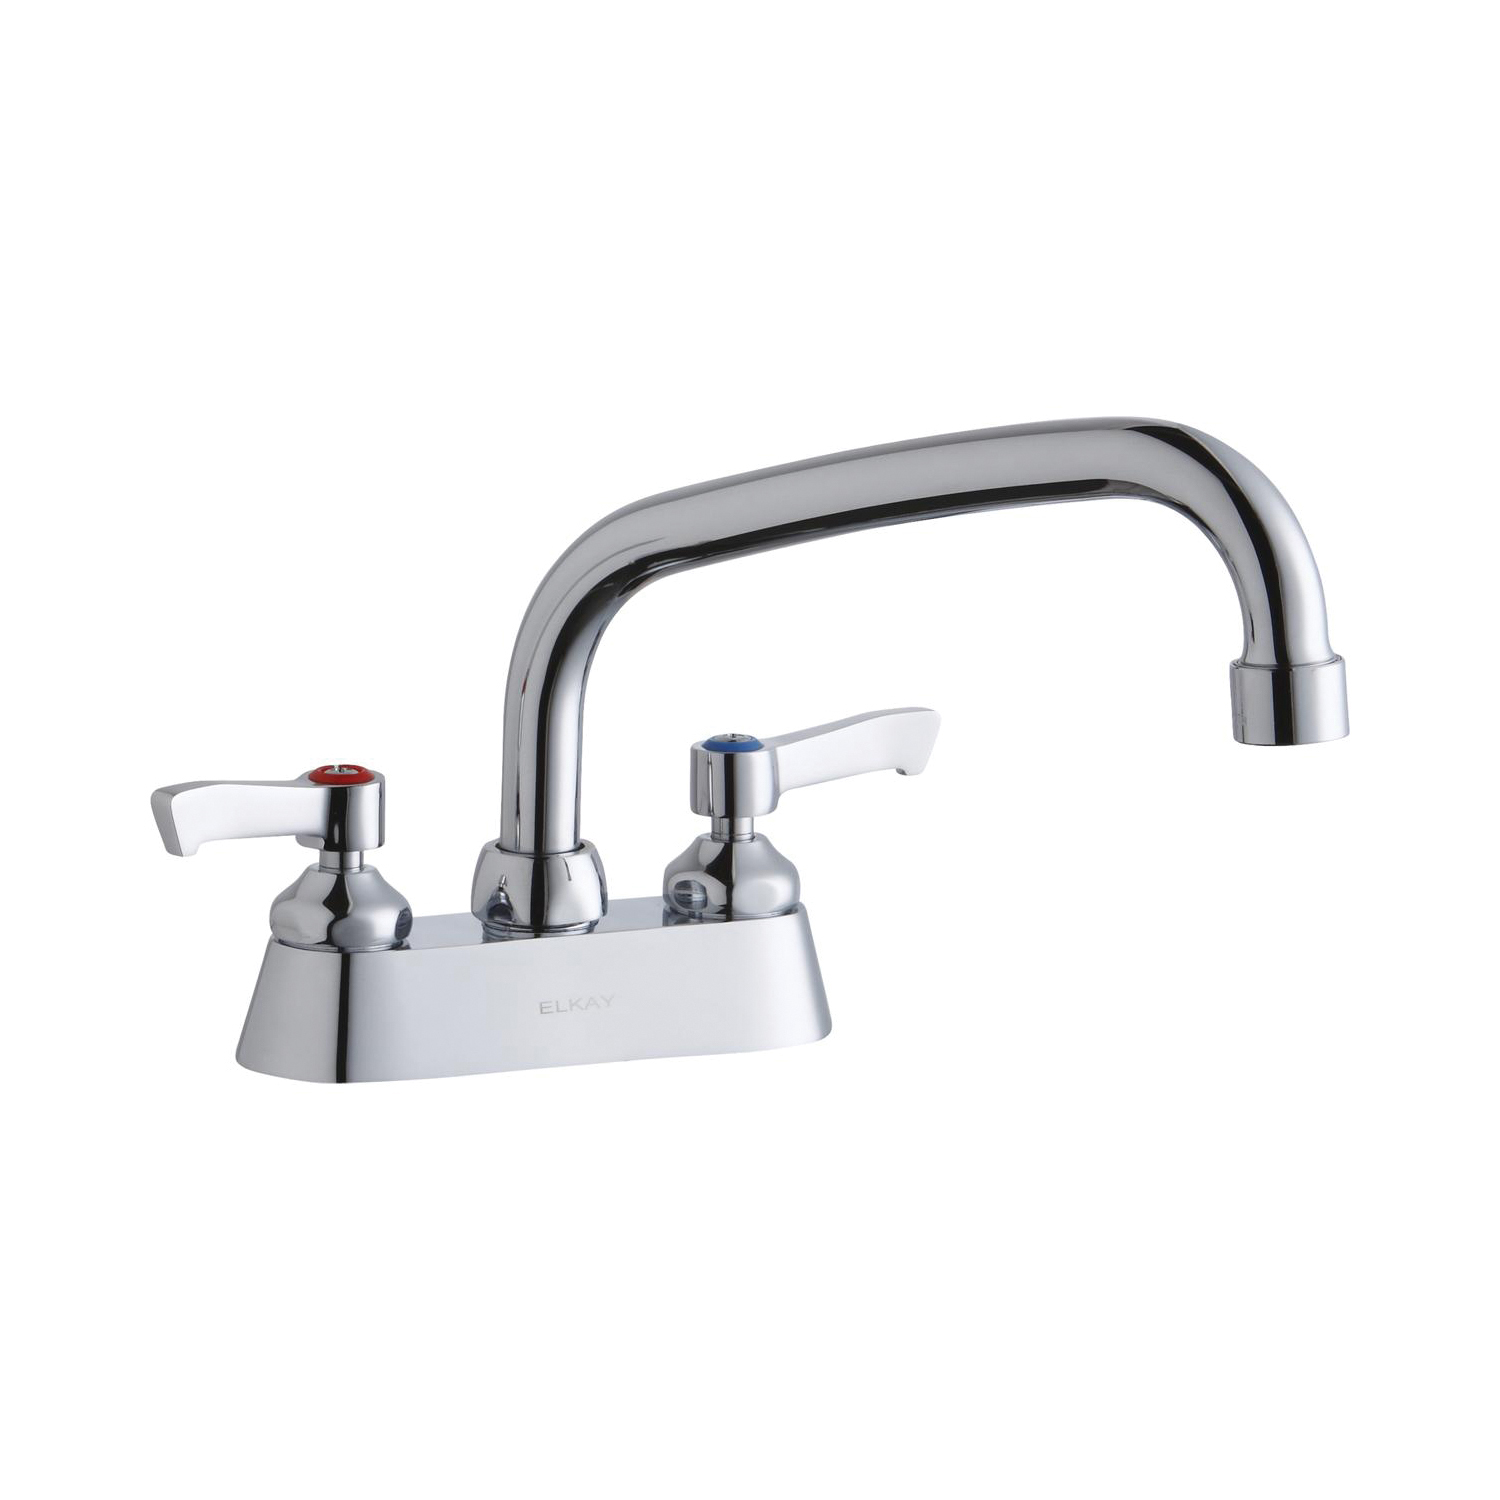 Elkay® LK406AT08L2 Centerset Bathroom Faucet, Chrome Plated, 2 Handles, 1.5 gpm